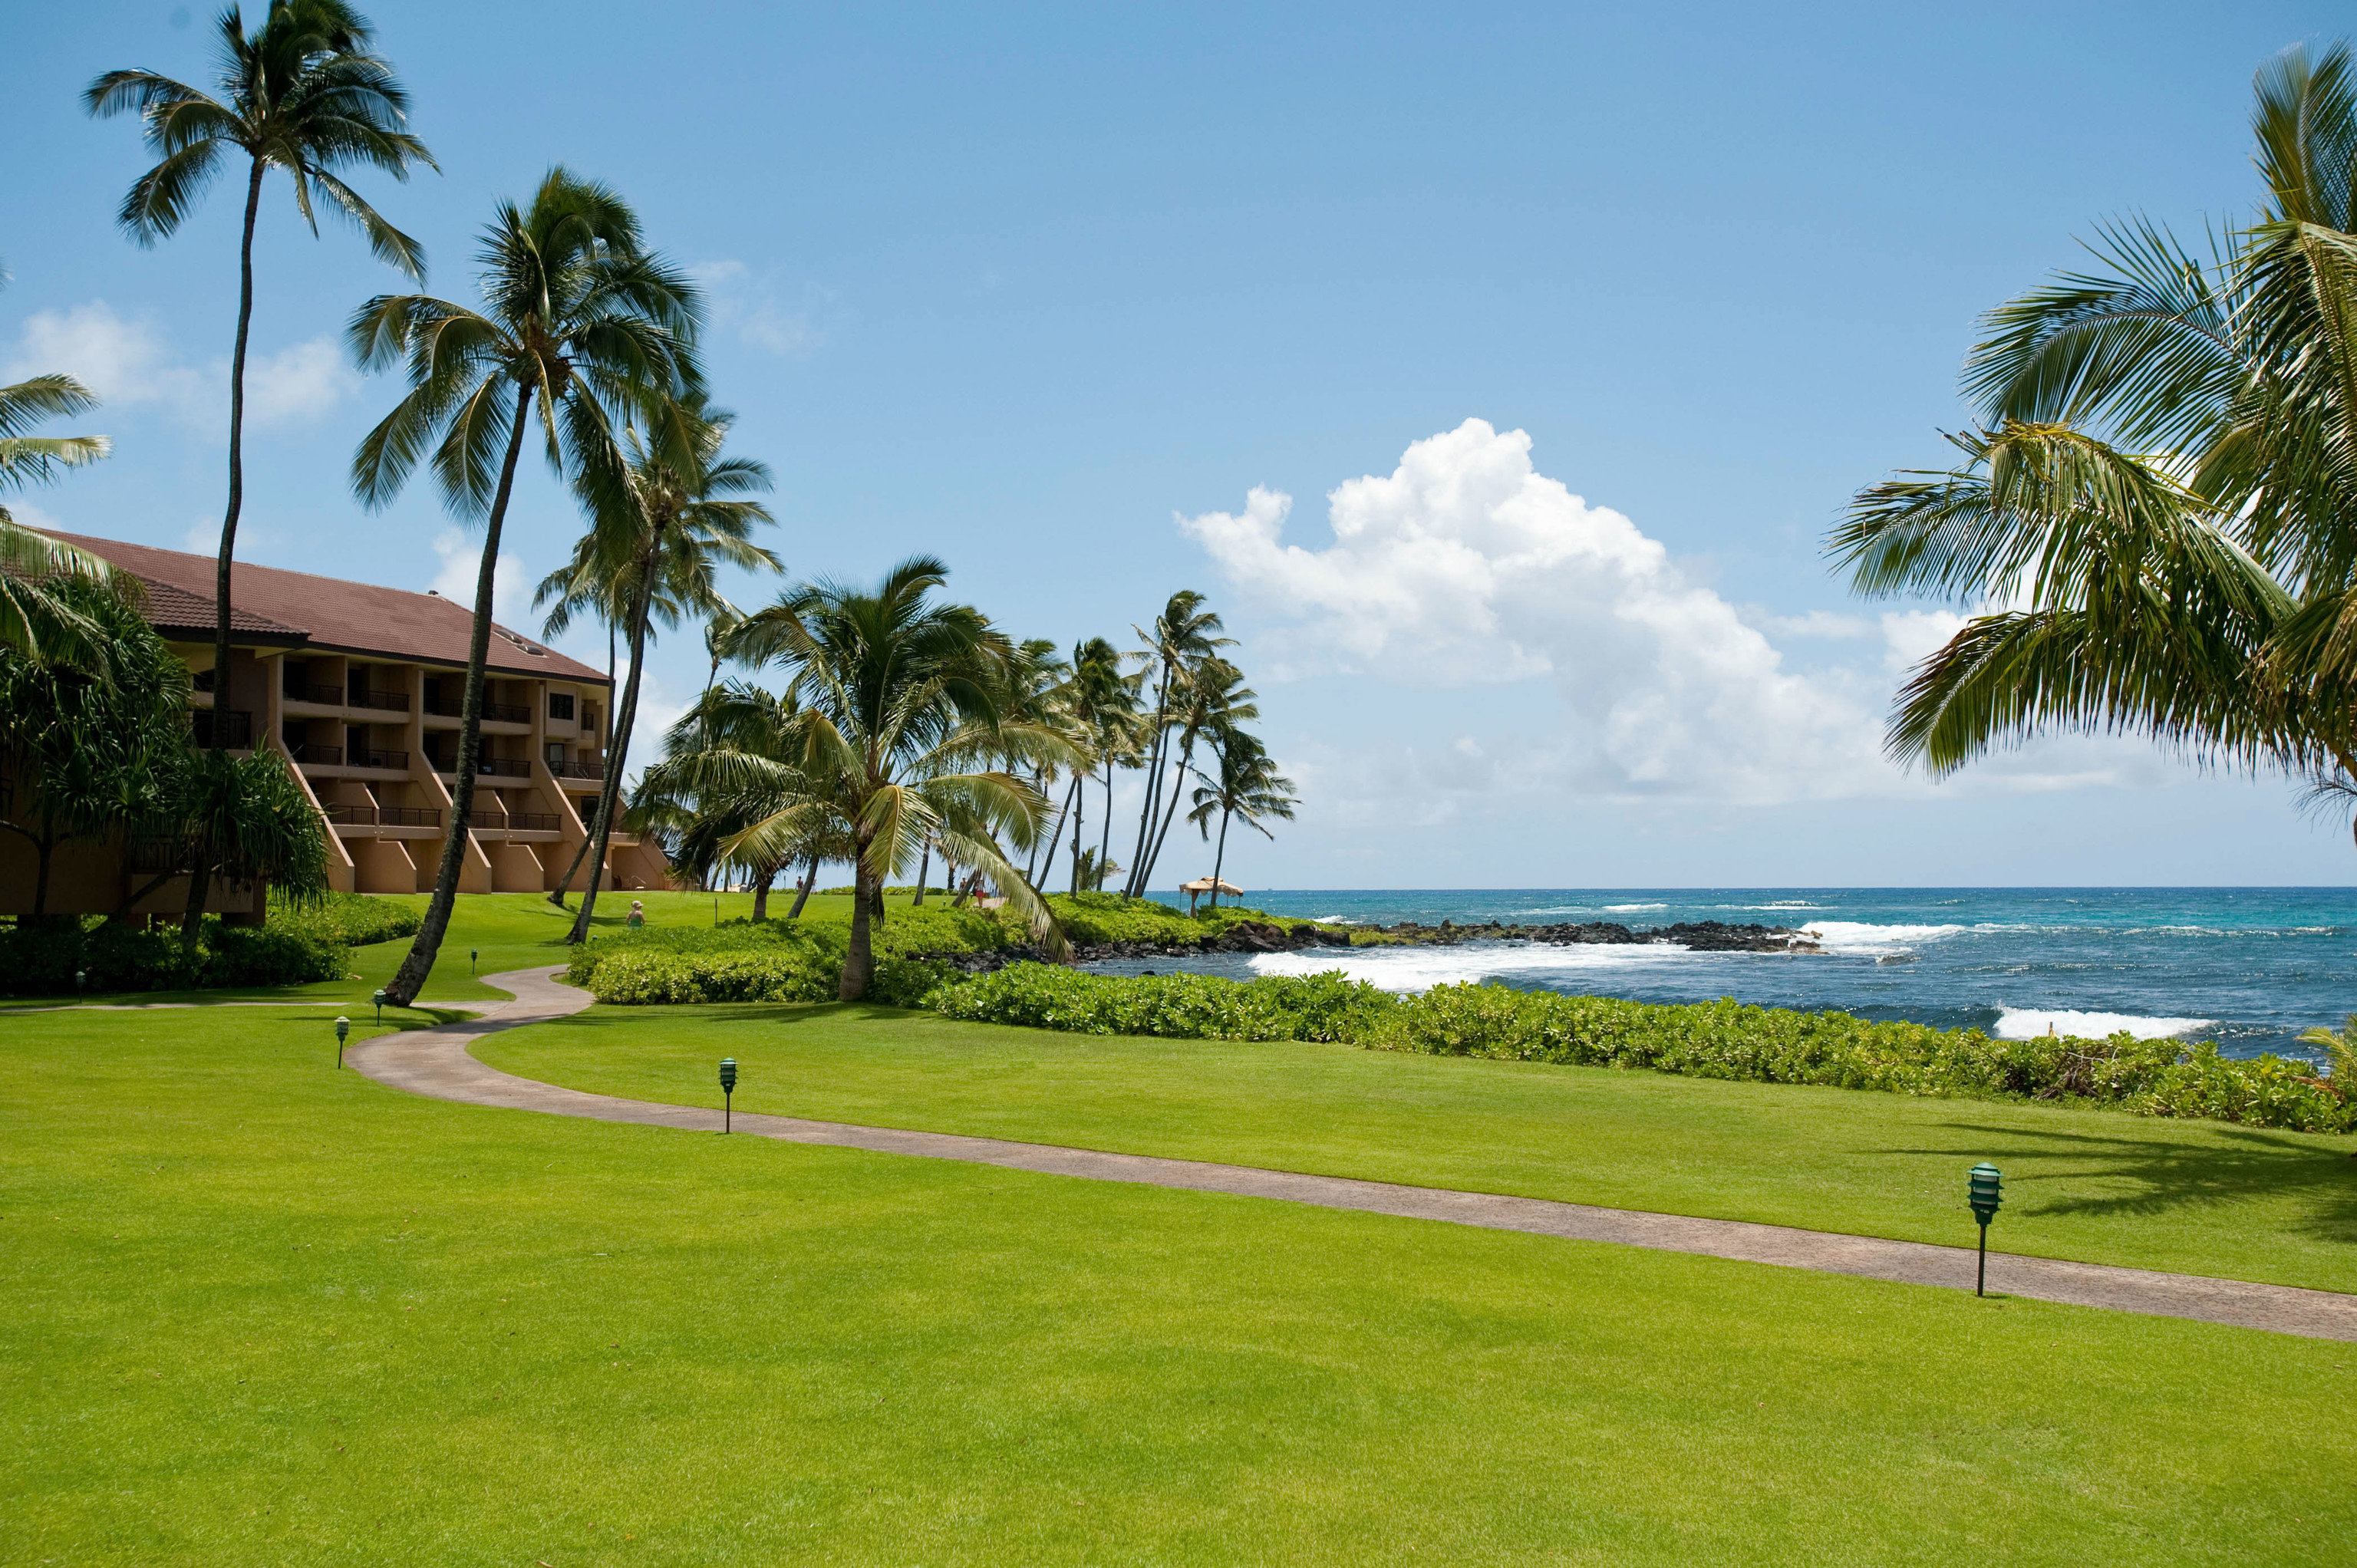 grass tree sky palm structure sport venue arecales Beach Sea plant Resort golf course lawn palm family